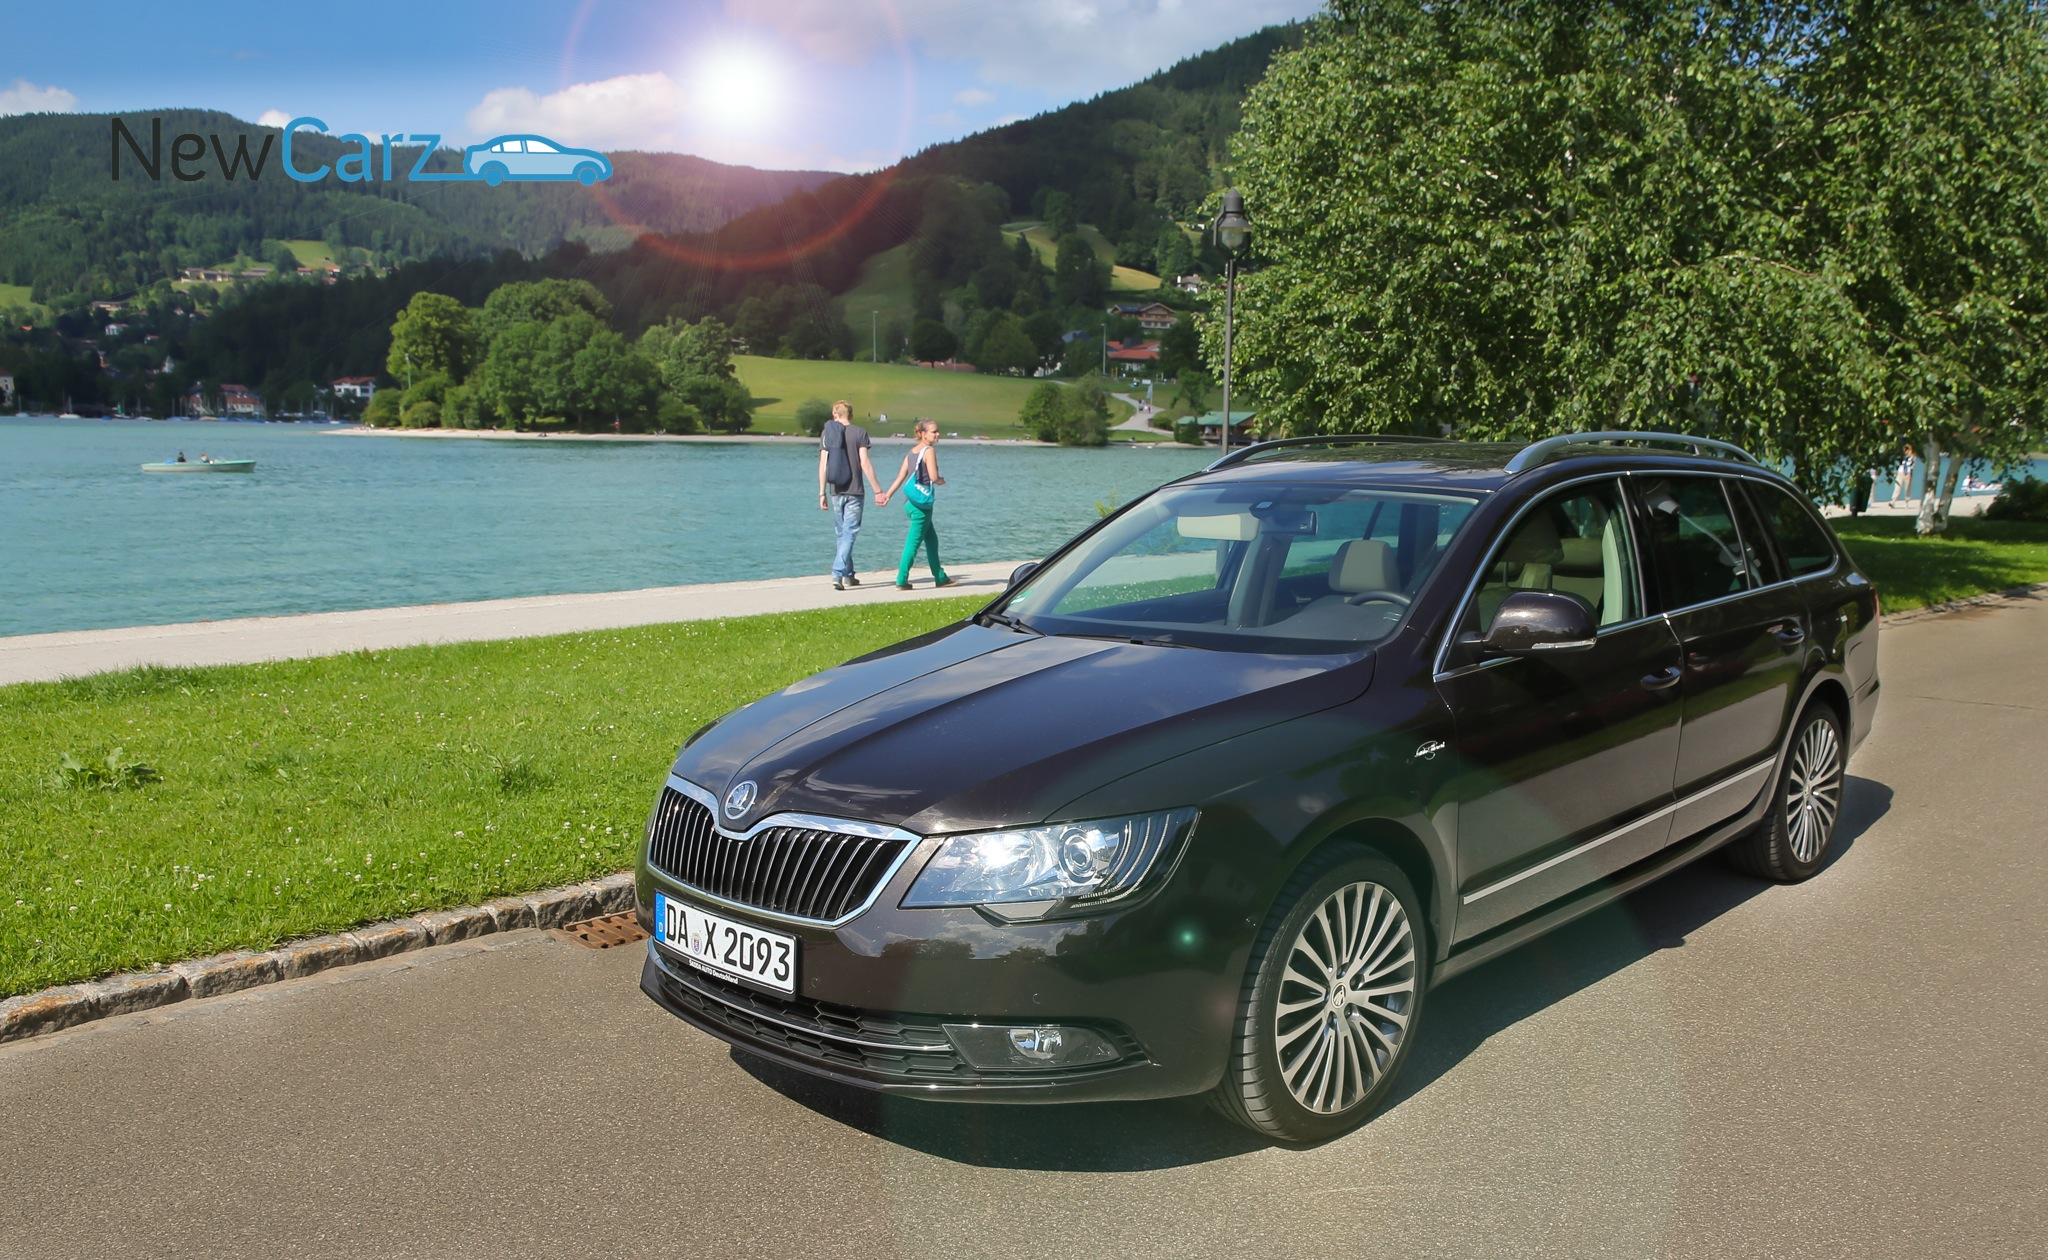 Skoda-Superb-Combi-NewCarz